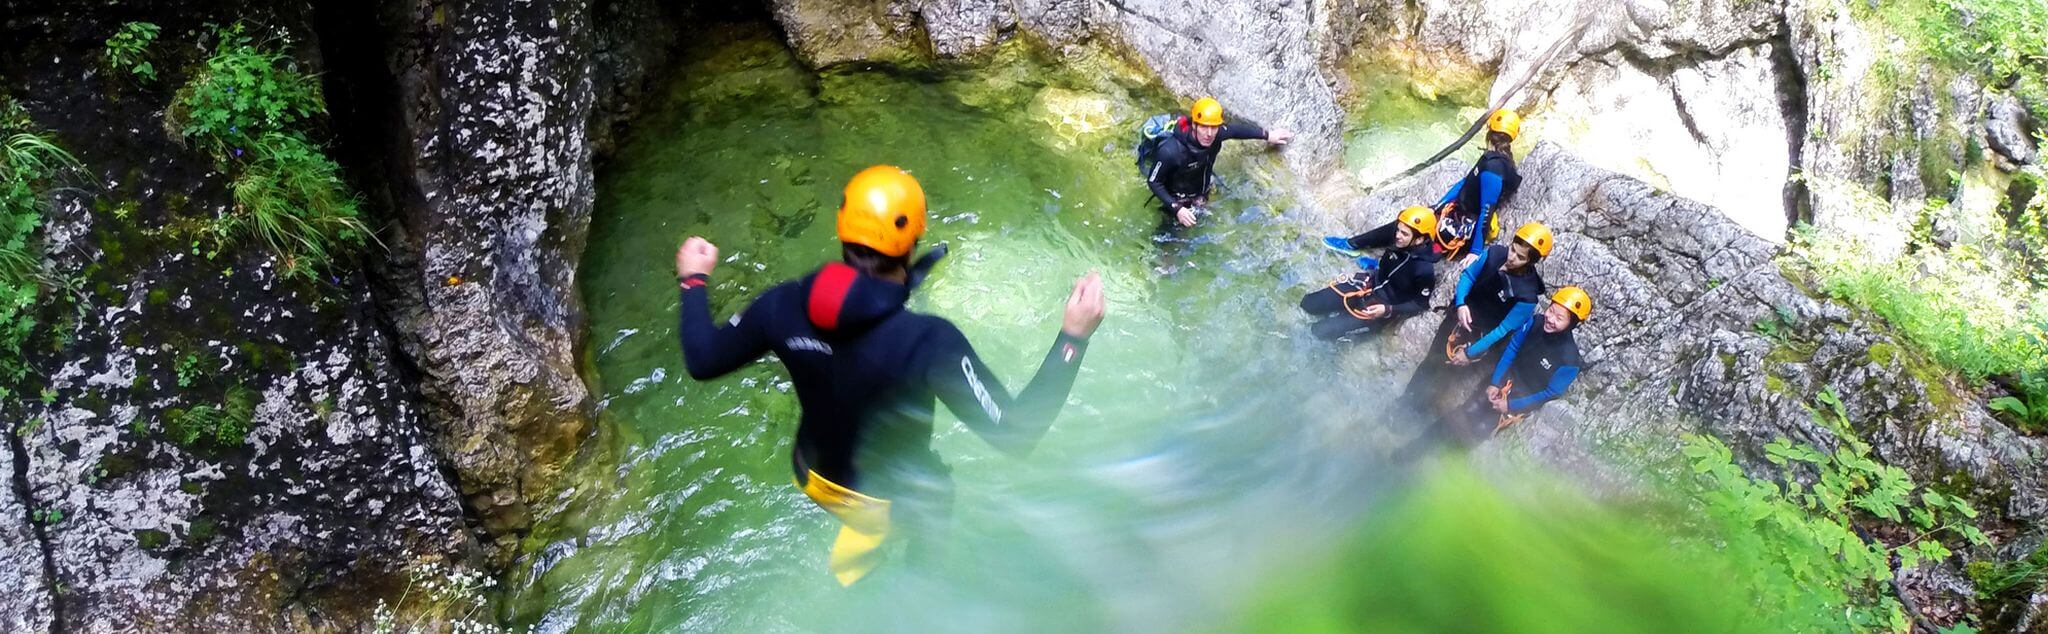 Canyoning in Sant Ferriol